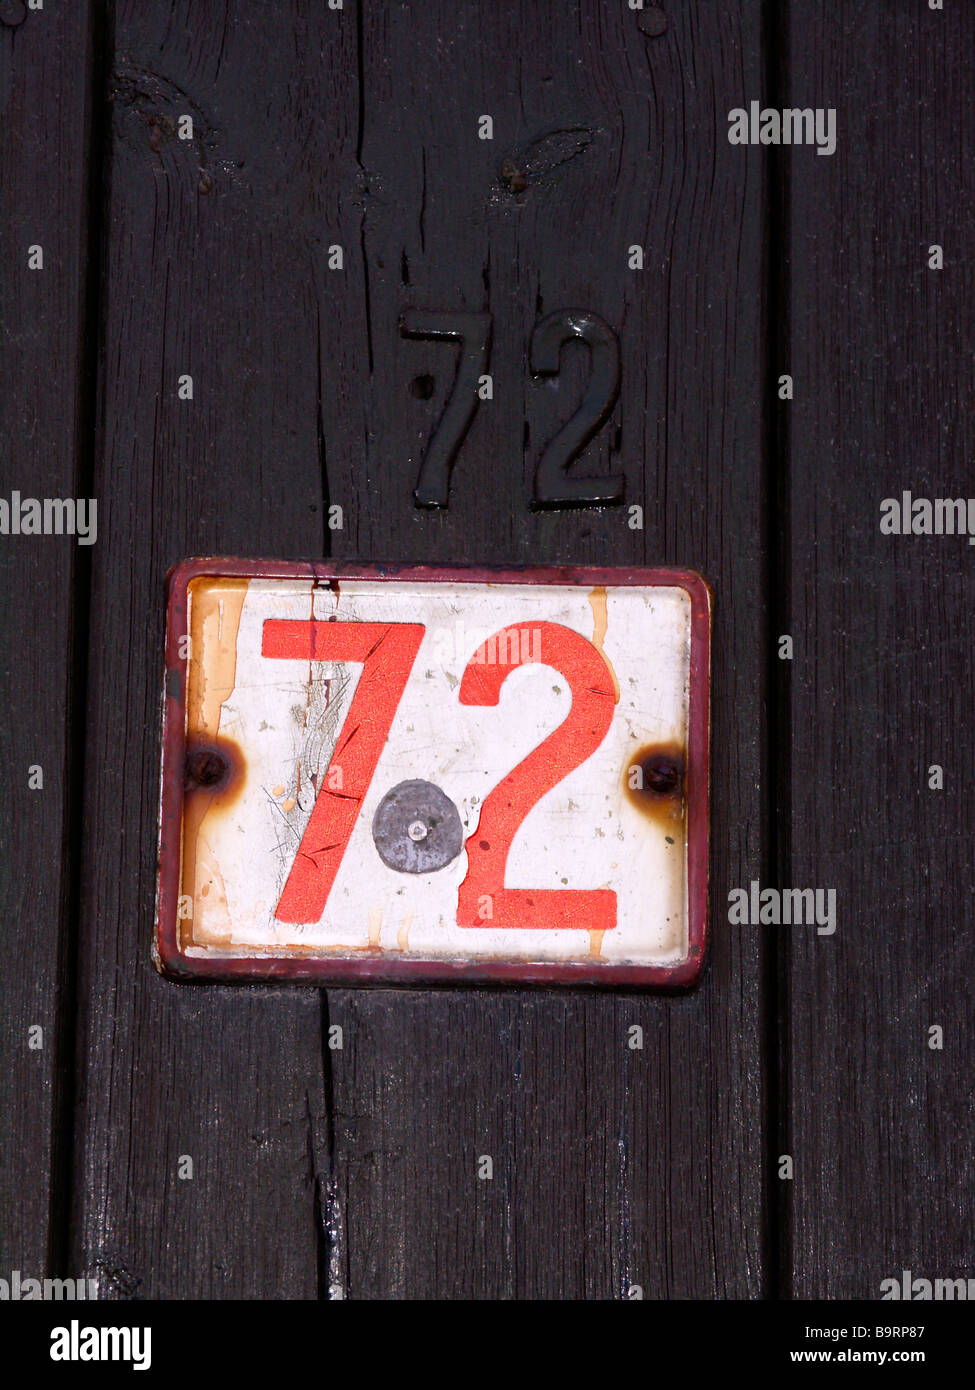 Numer 72 sign on old door - Stock Image